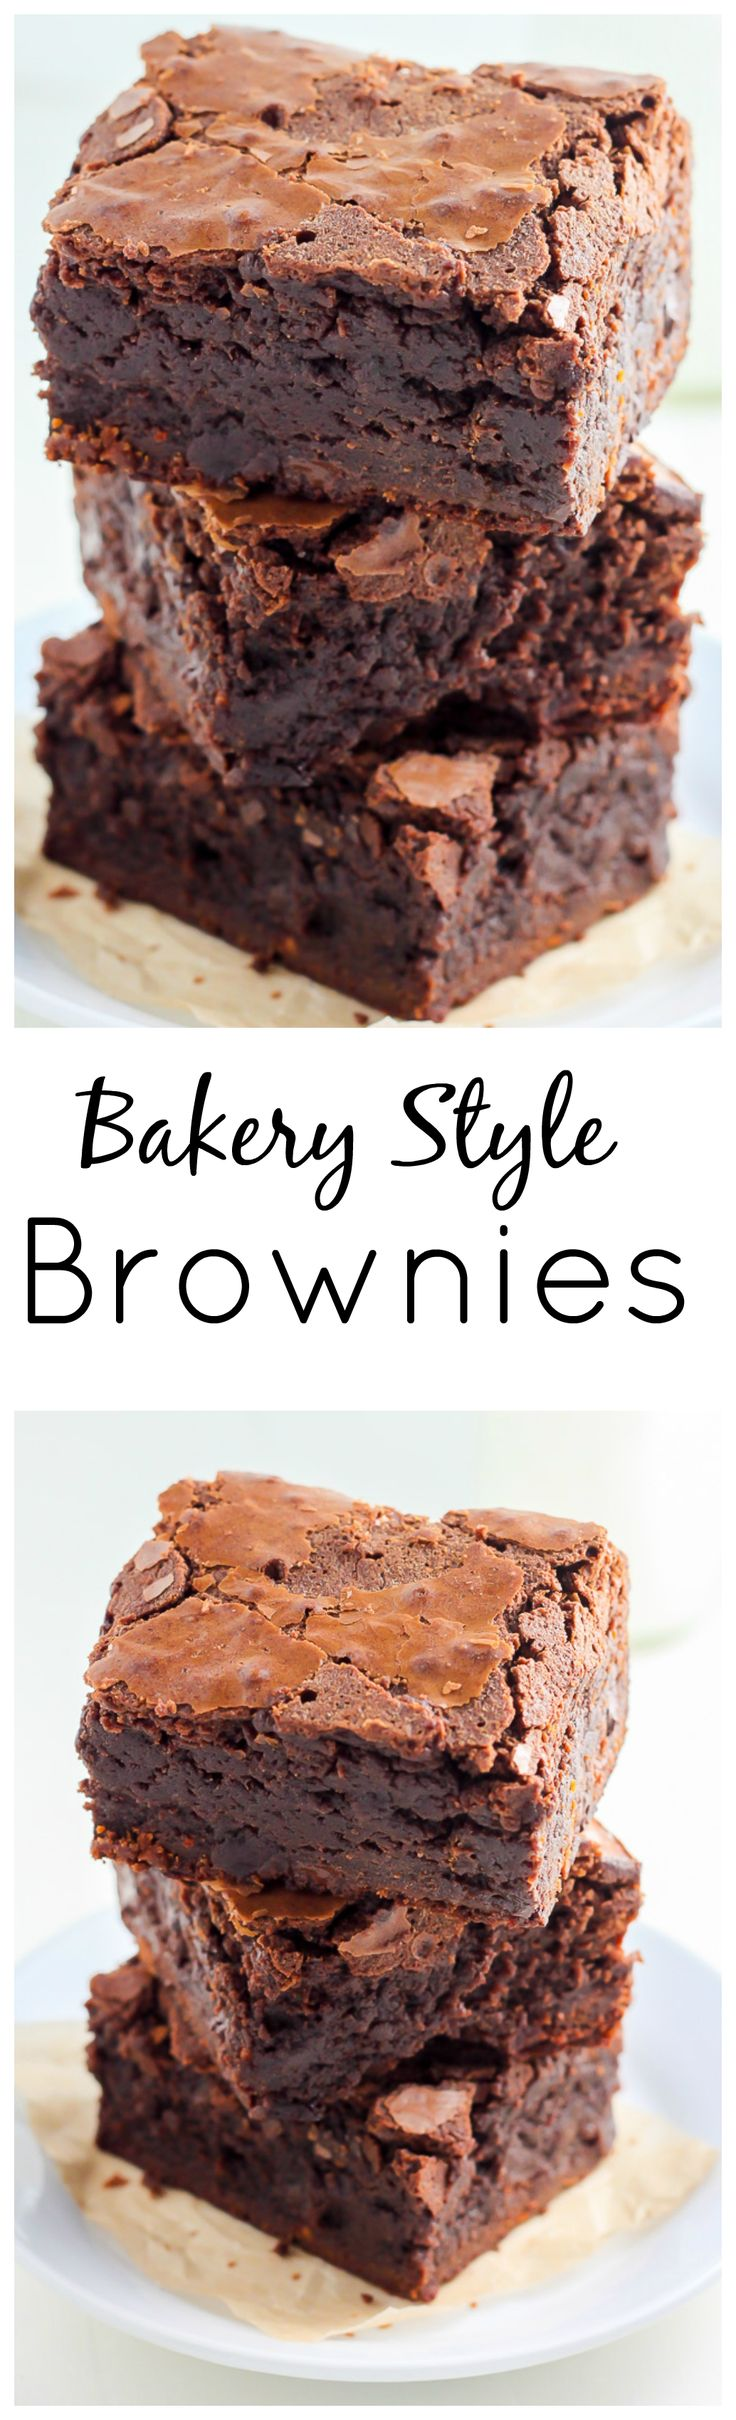 This is the recipe for the FAMOUS Baked Bakery brownies! Super thick, fudgy, and sure to win you over!!!